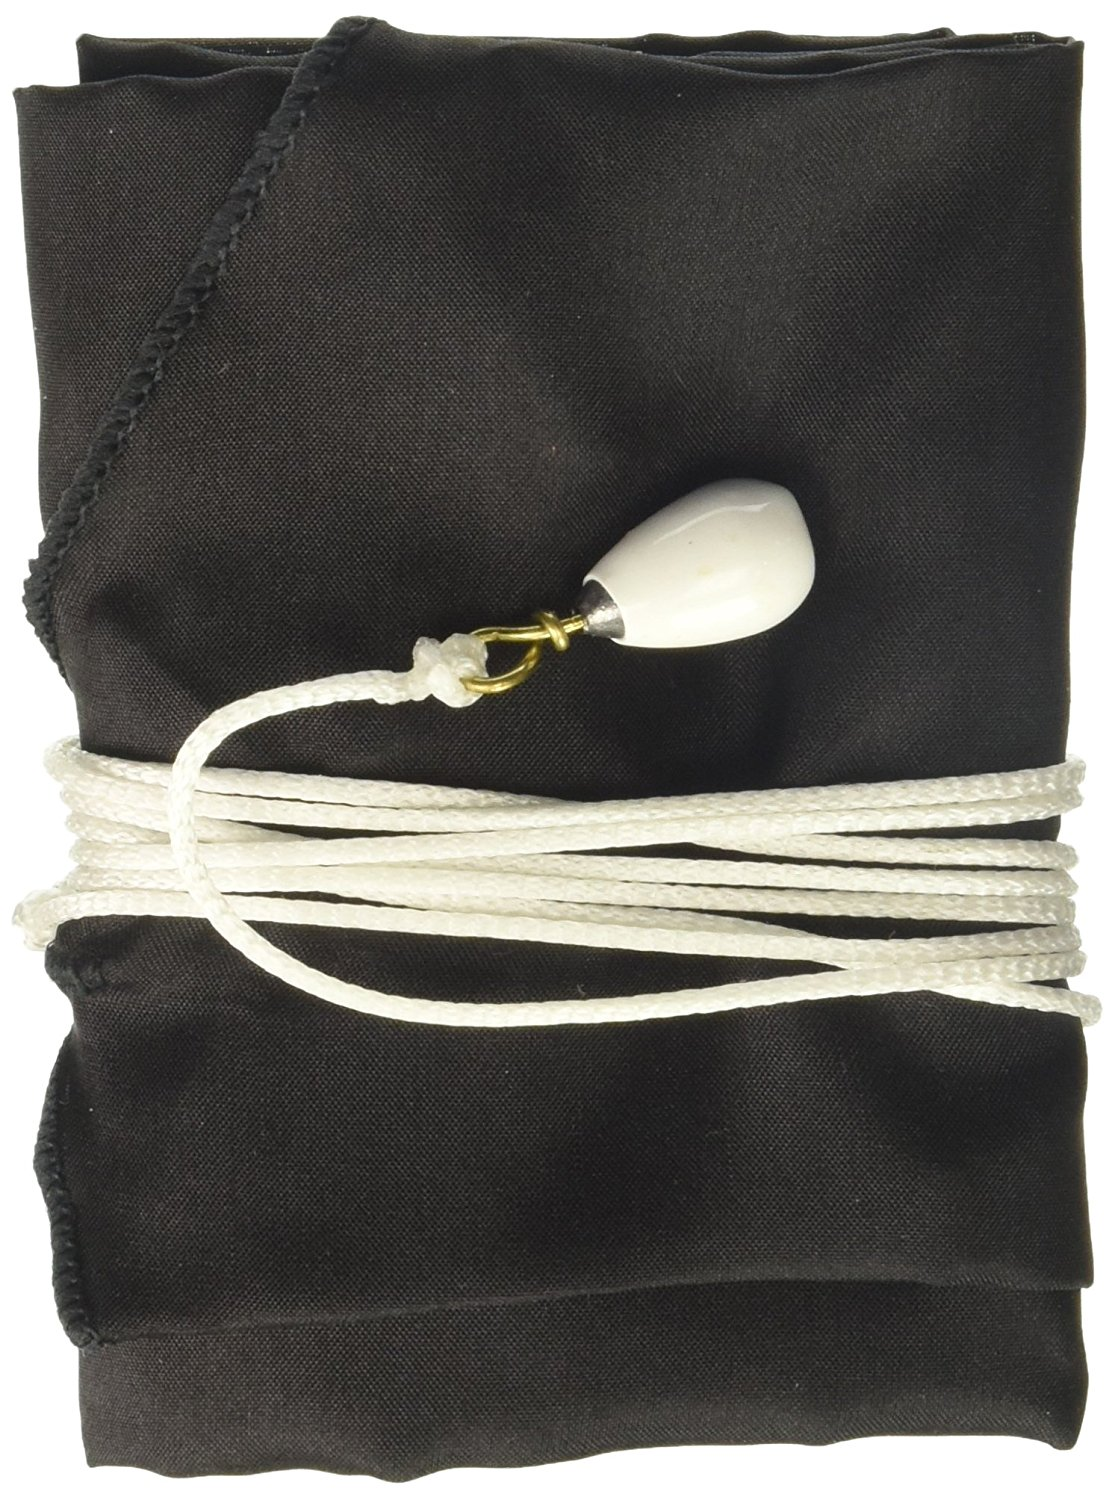 Silk Tenor Saxophone Swab Black, The silk saxophone swabs are designed to go all the way... by